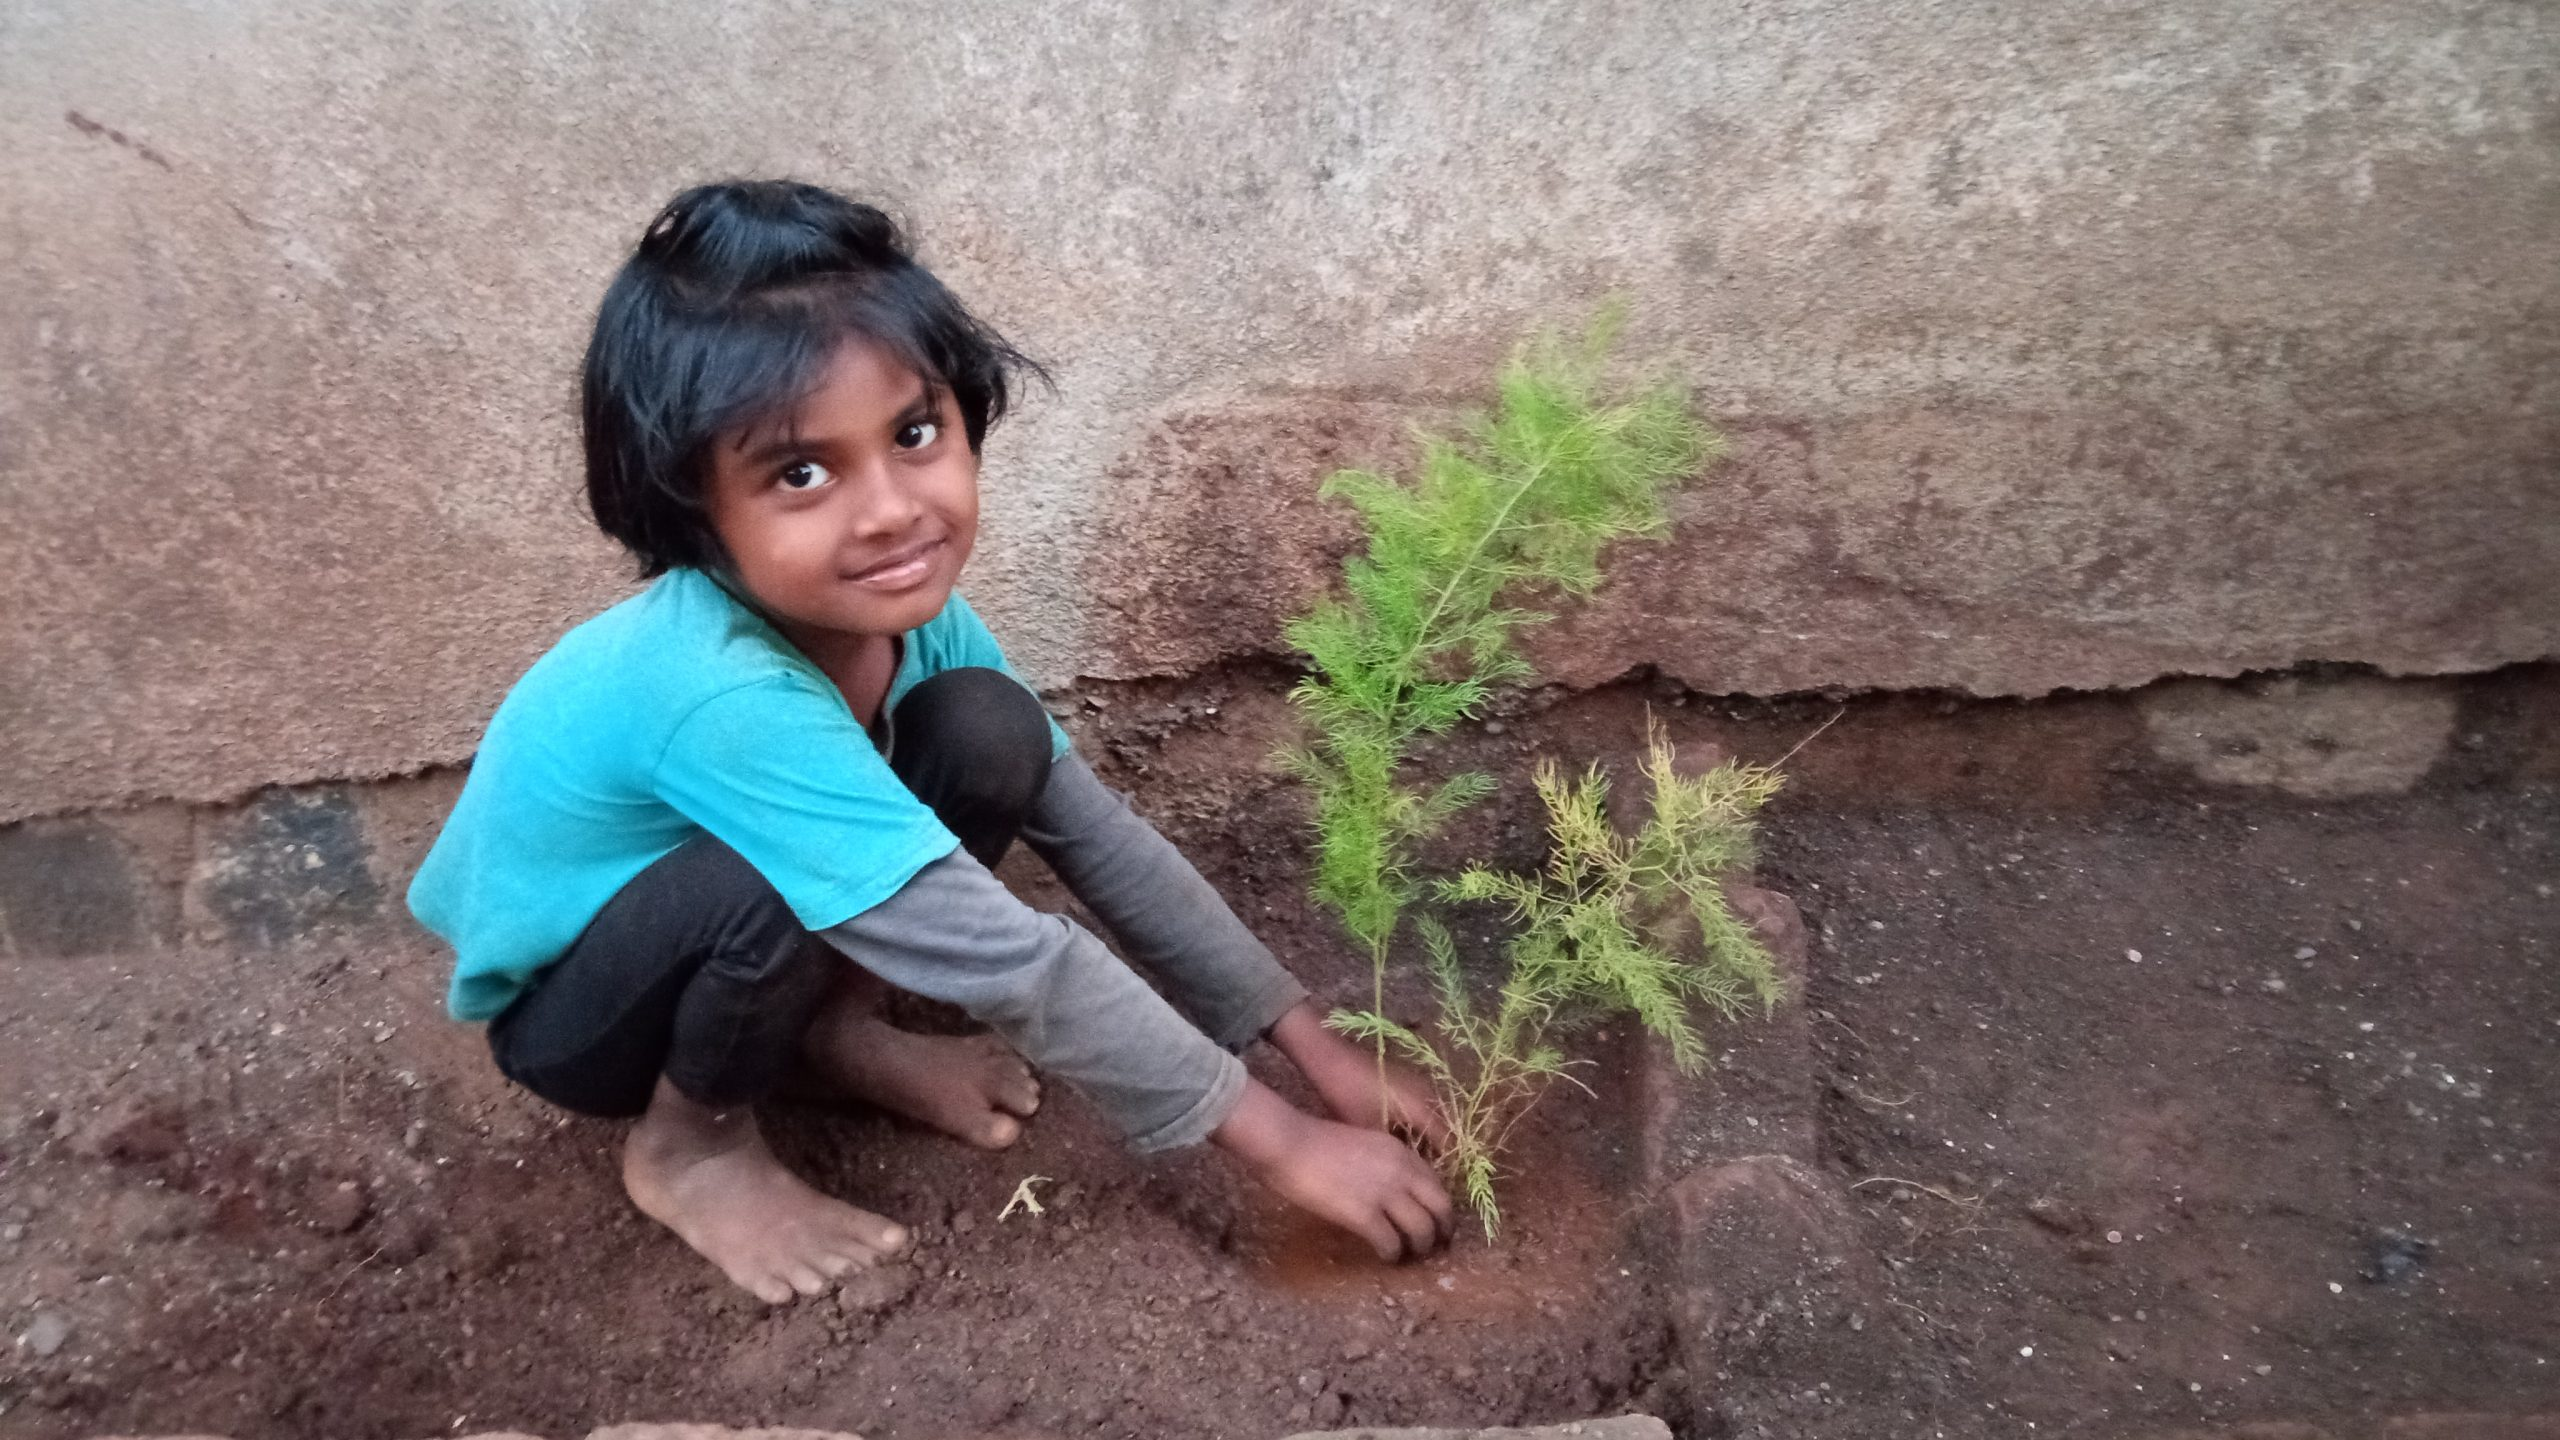 A little girl planting a plant